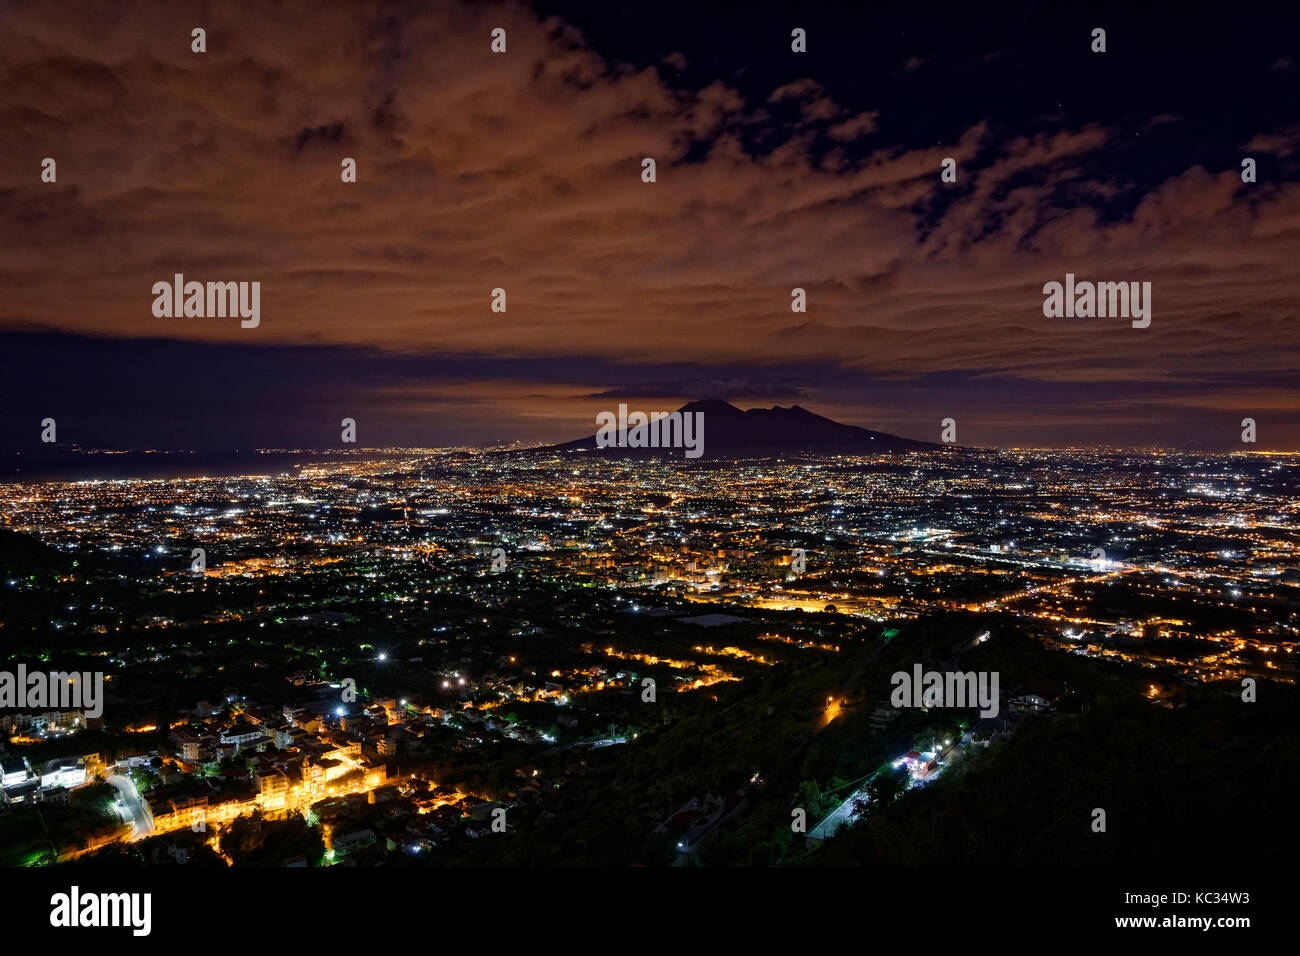 Mount Vesuvius silhouetted by the glow from the Naples conurbation in Campania Province, Southern Italy. - Stock Image